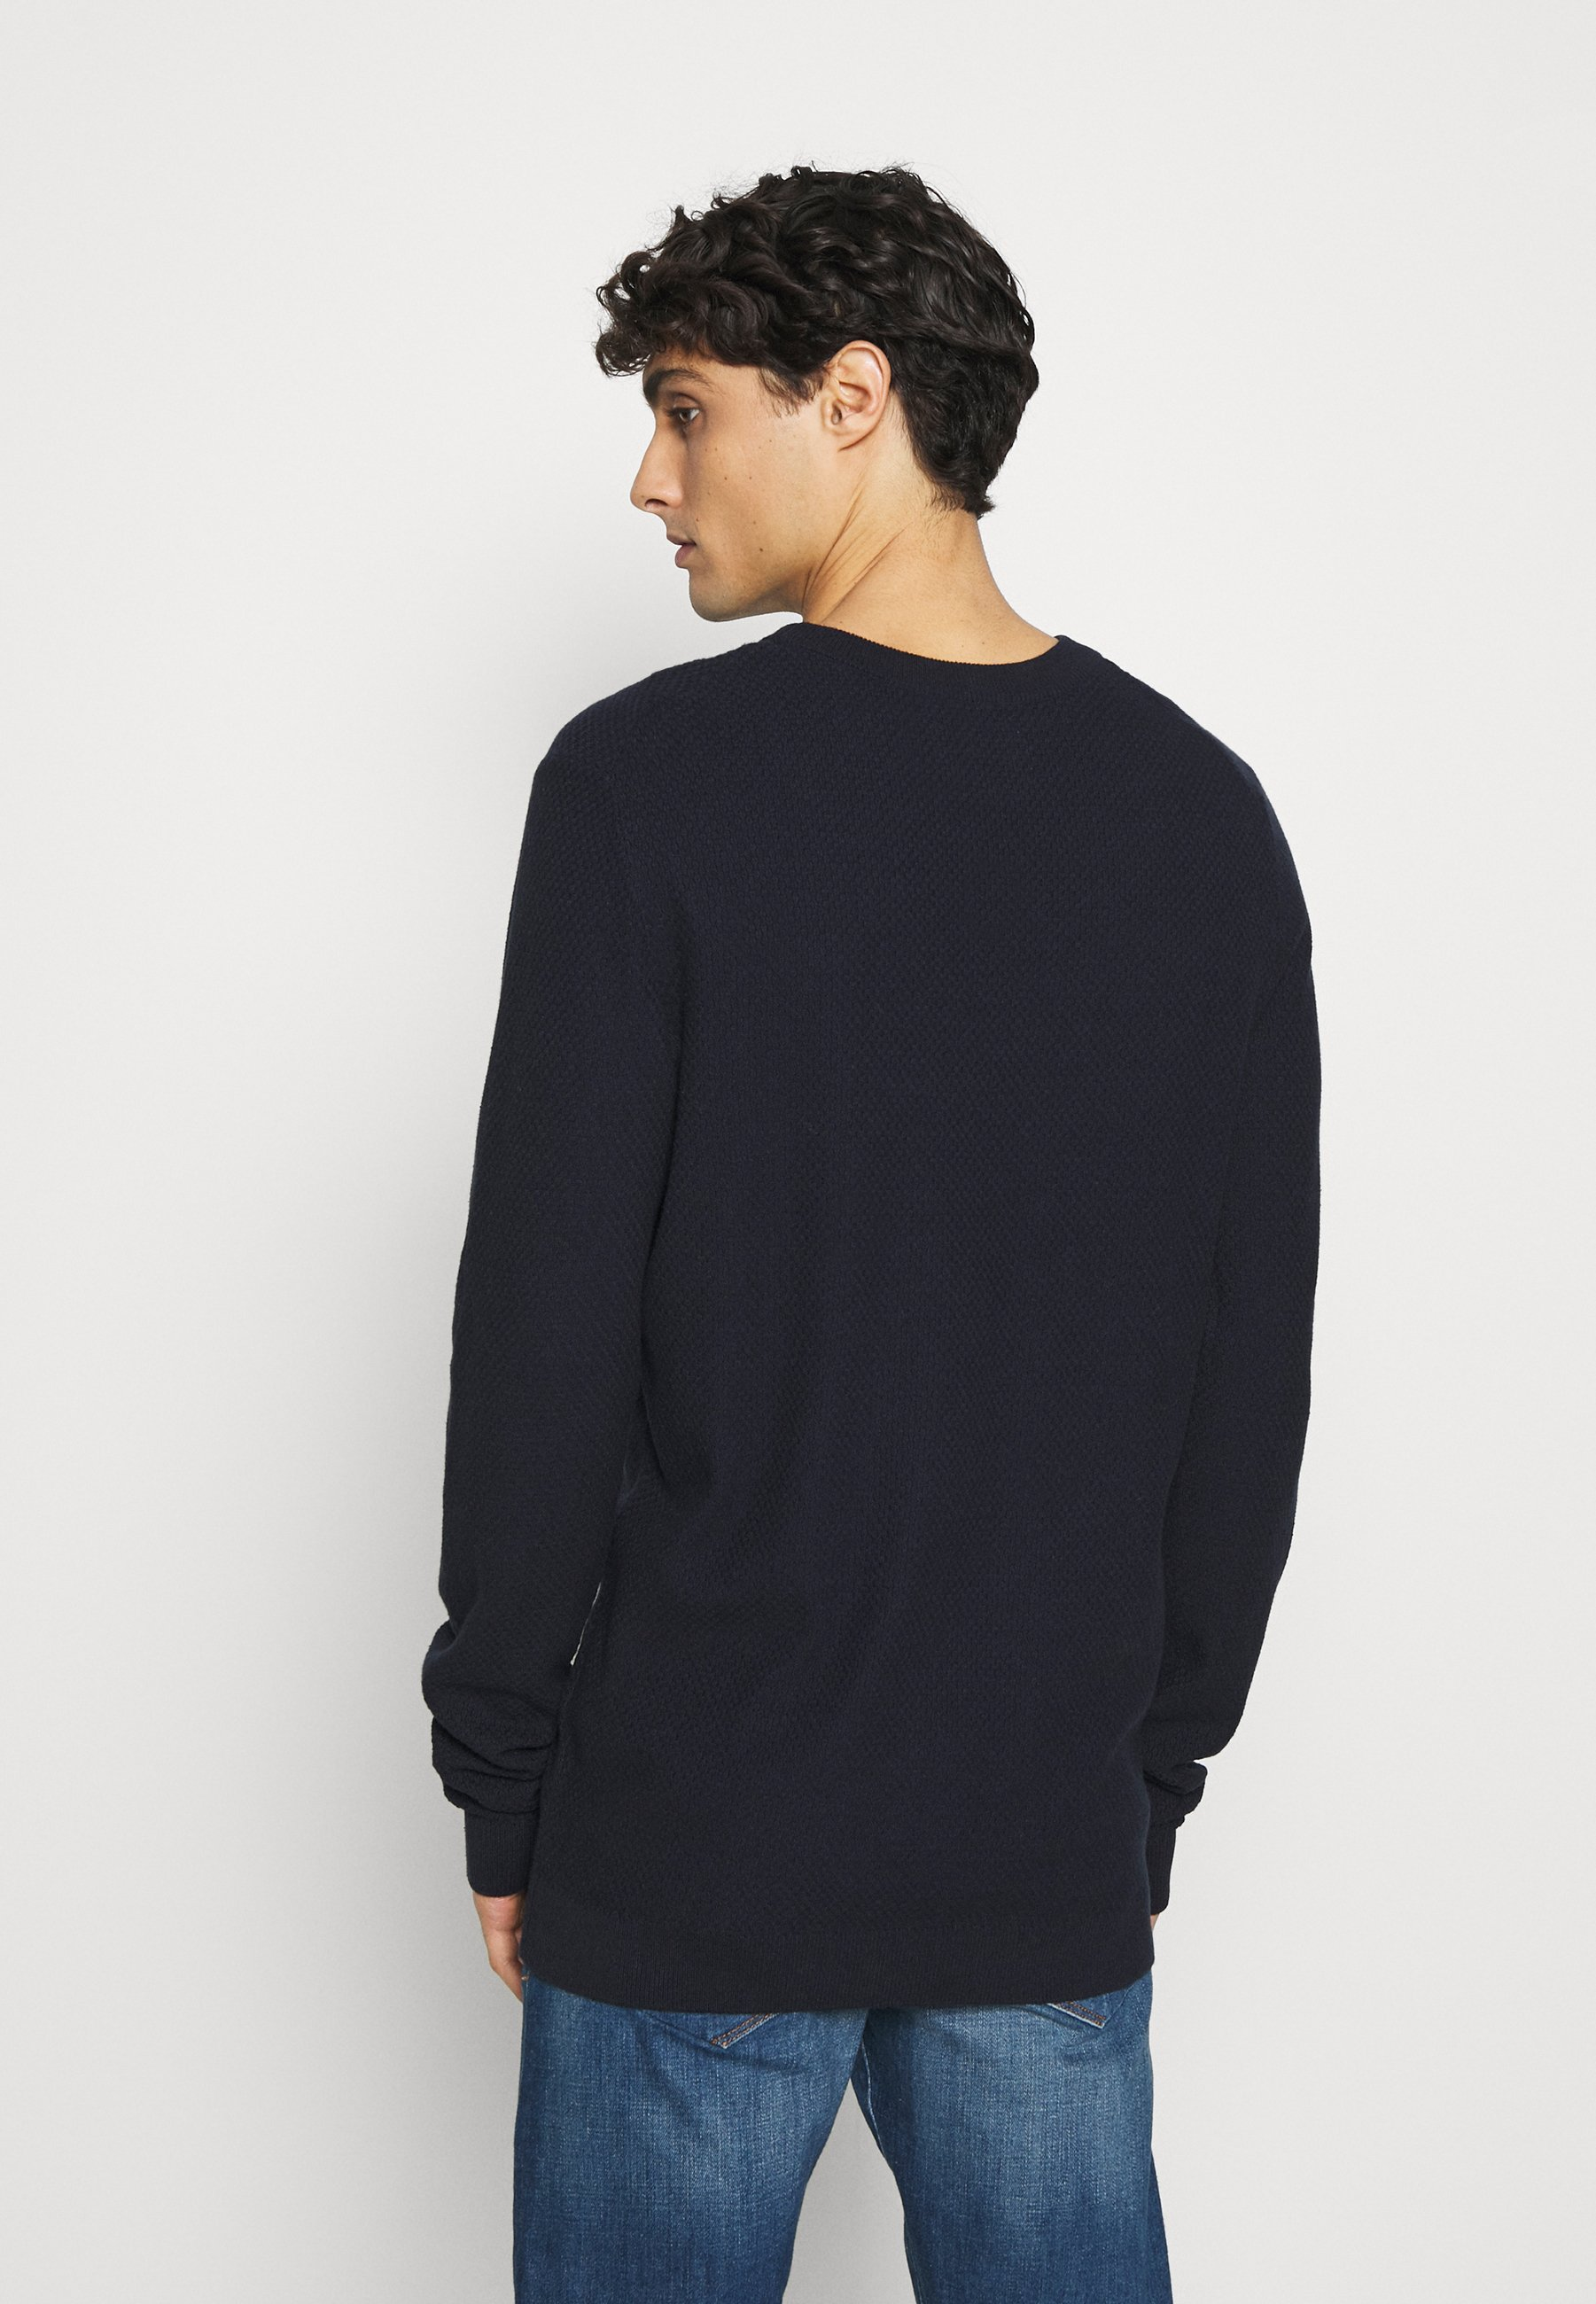 Homme BRICK WALL STRUCTURE CREWNECK - Pullover